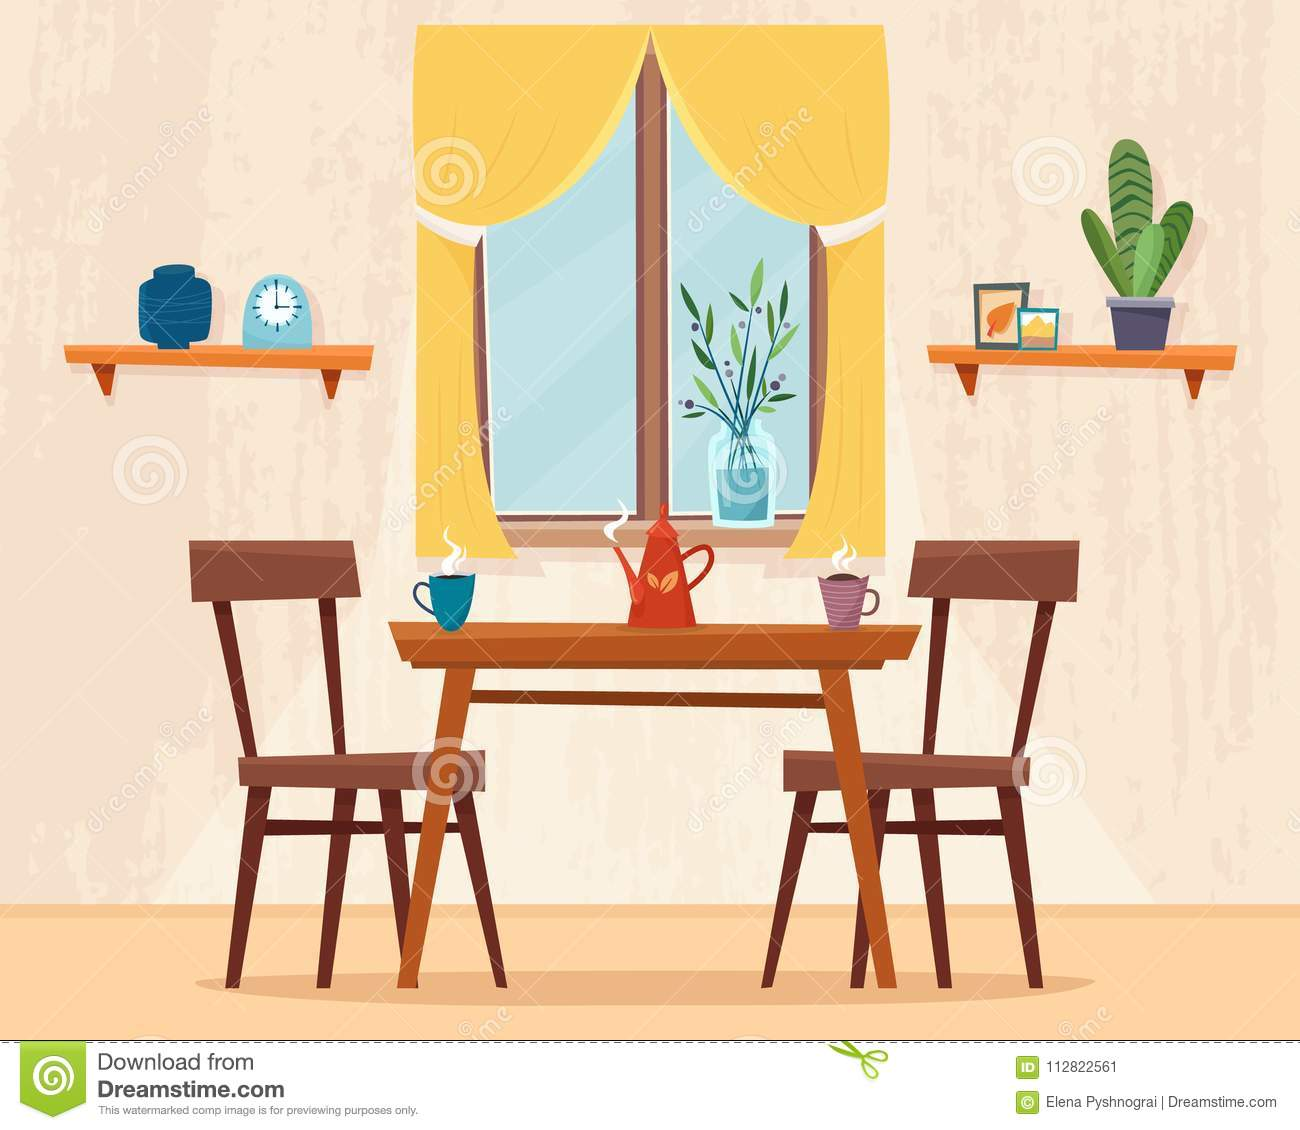 Dining Table In Kitchen With Chairs Stock Vector Illustration Of